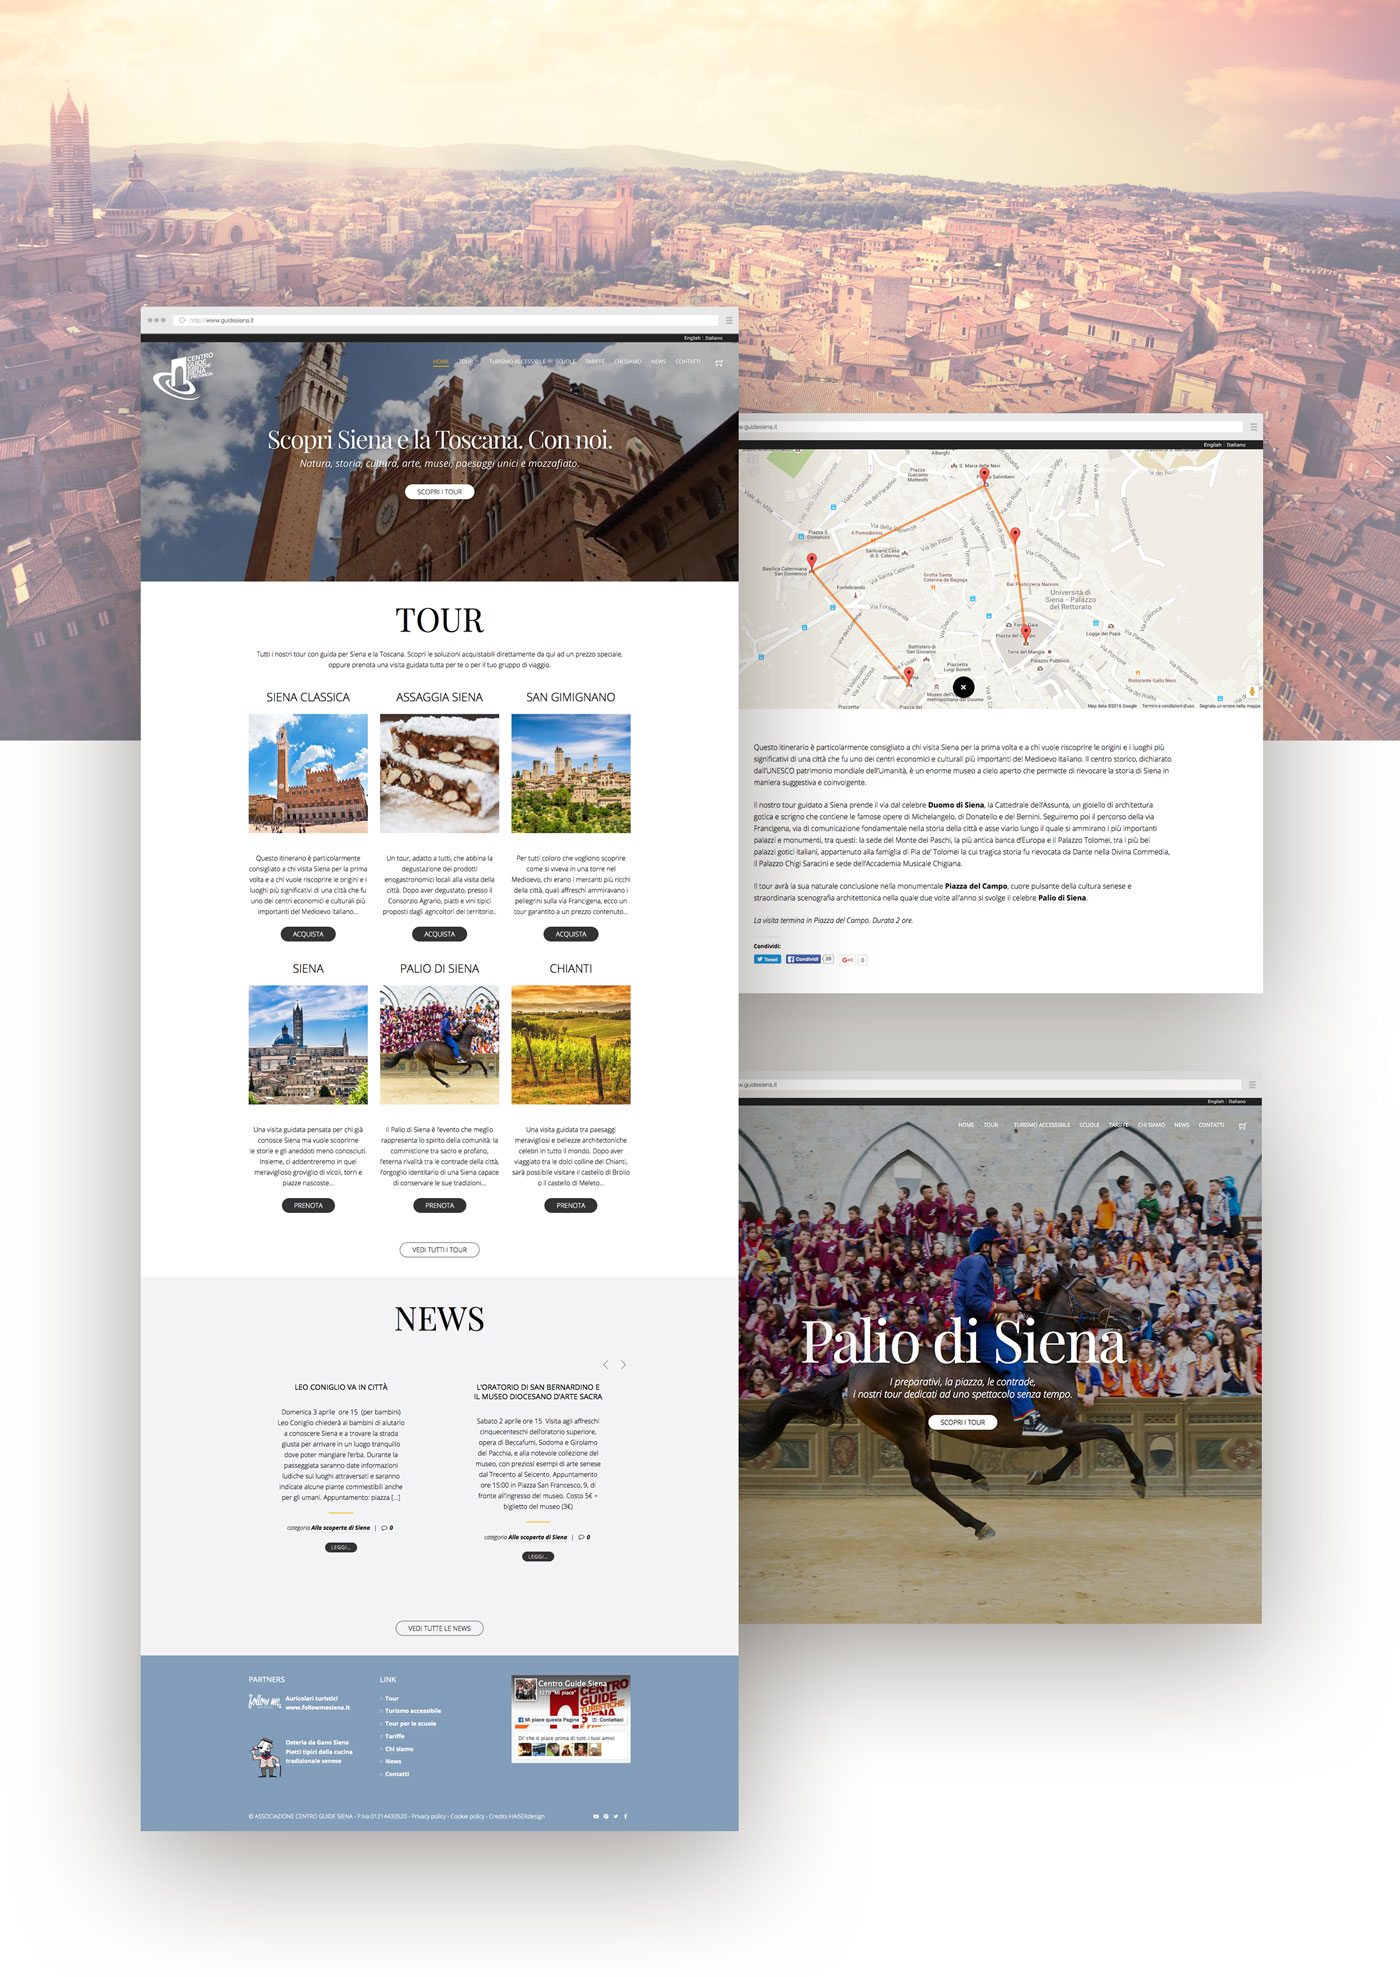 web-design-content-strategy-guide-siena-3a